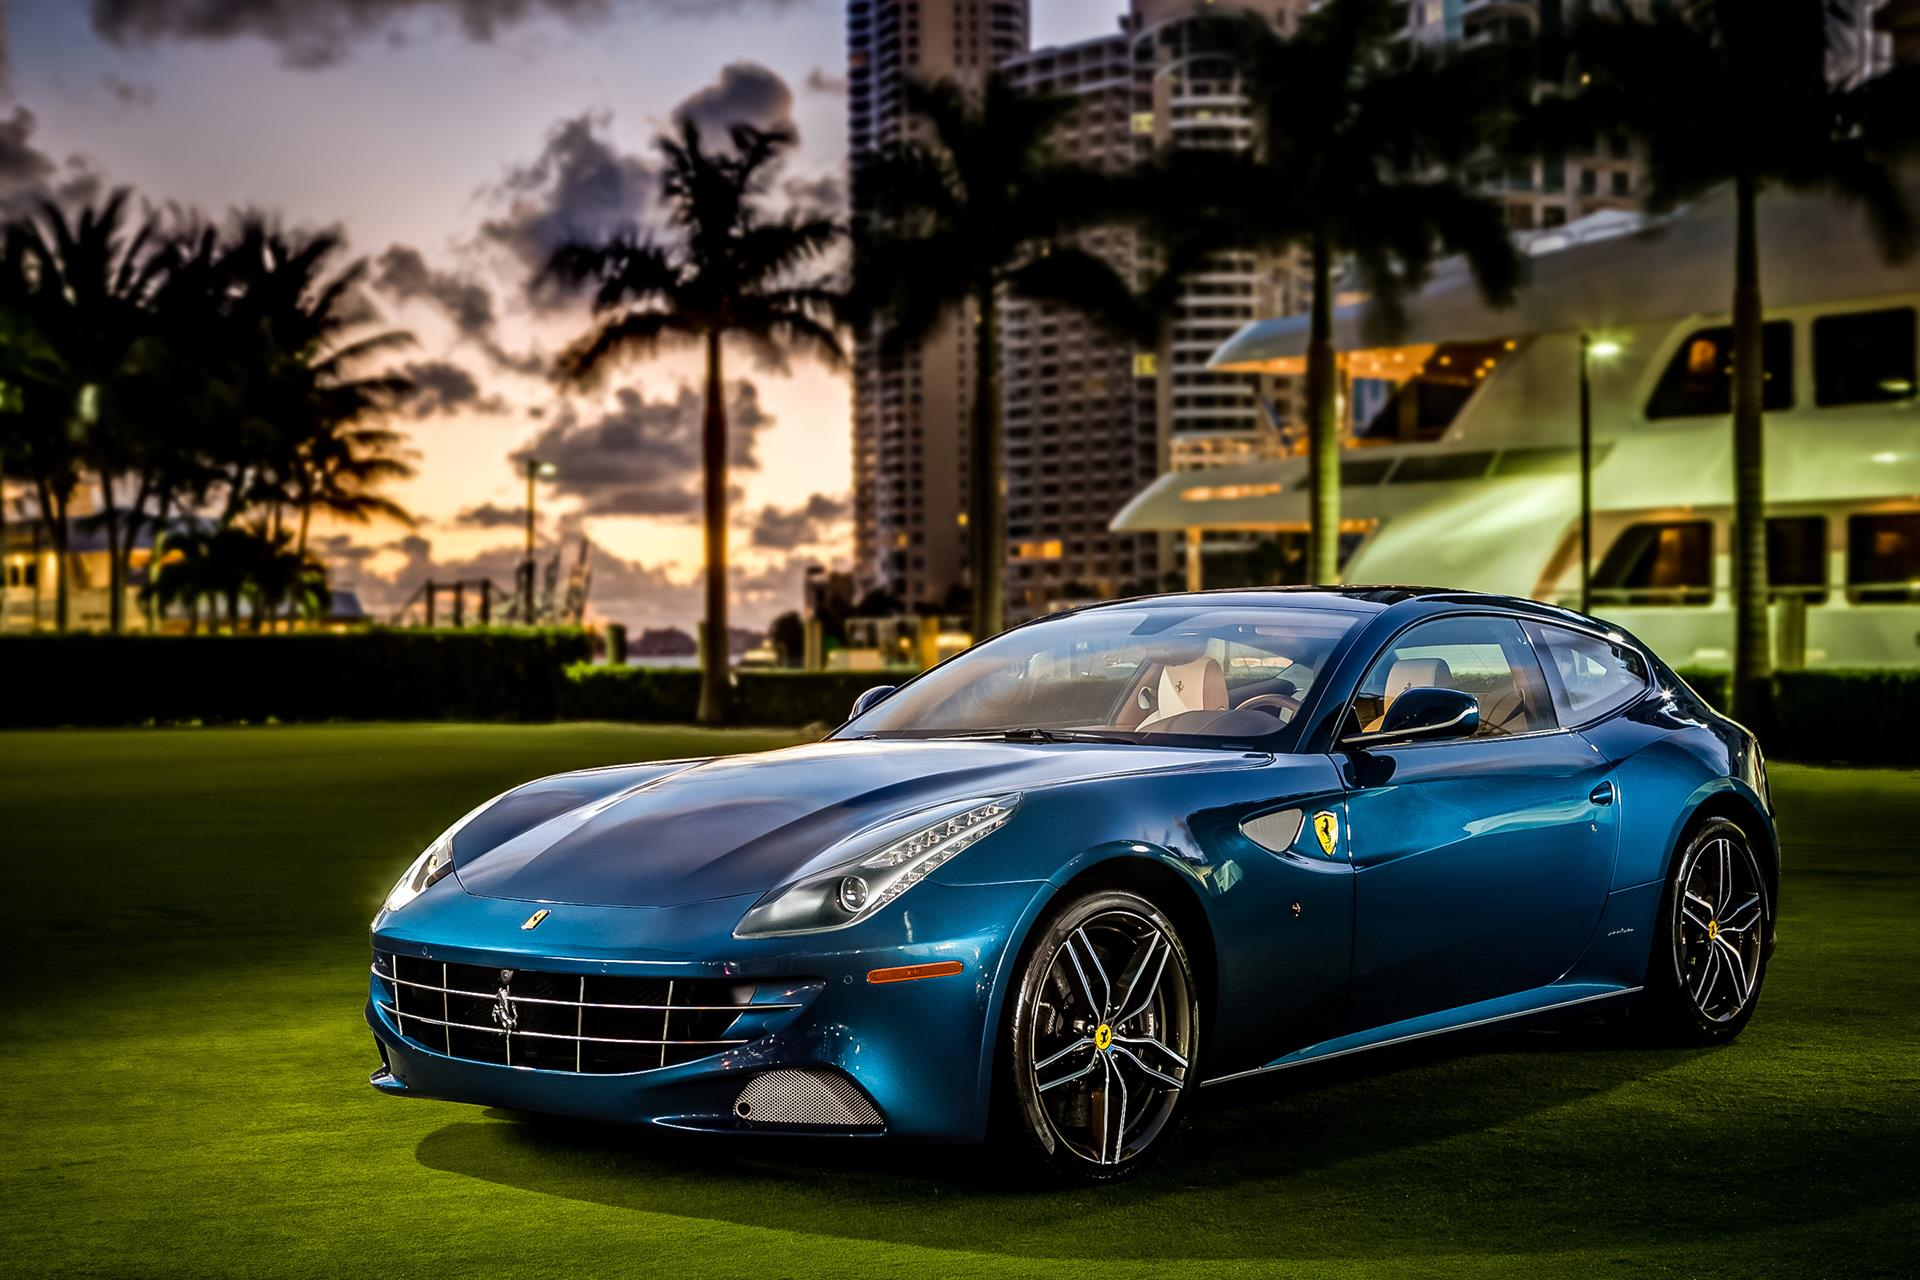 1920x1280 - Ferrari FF Wallpapers 30